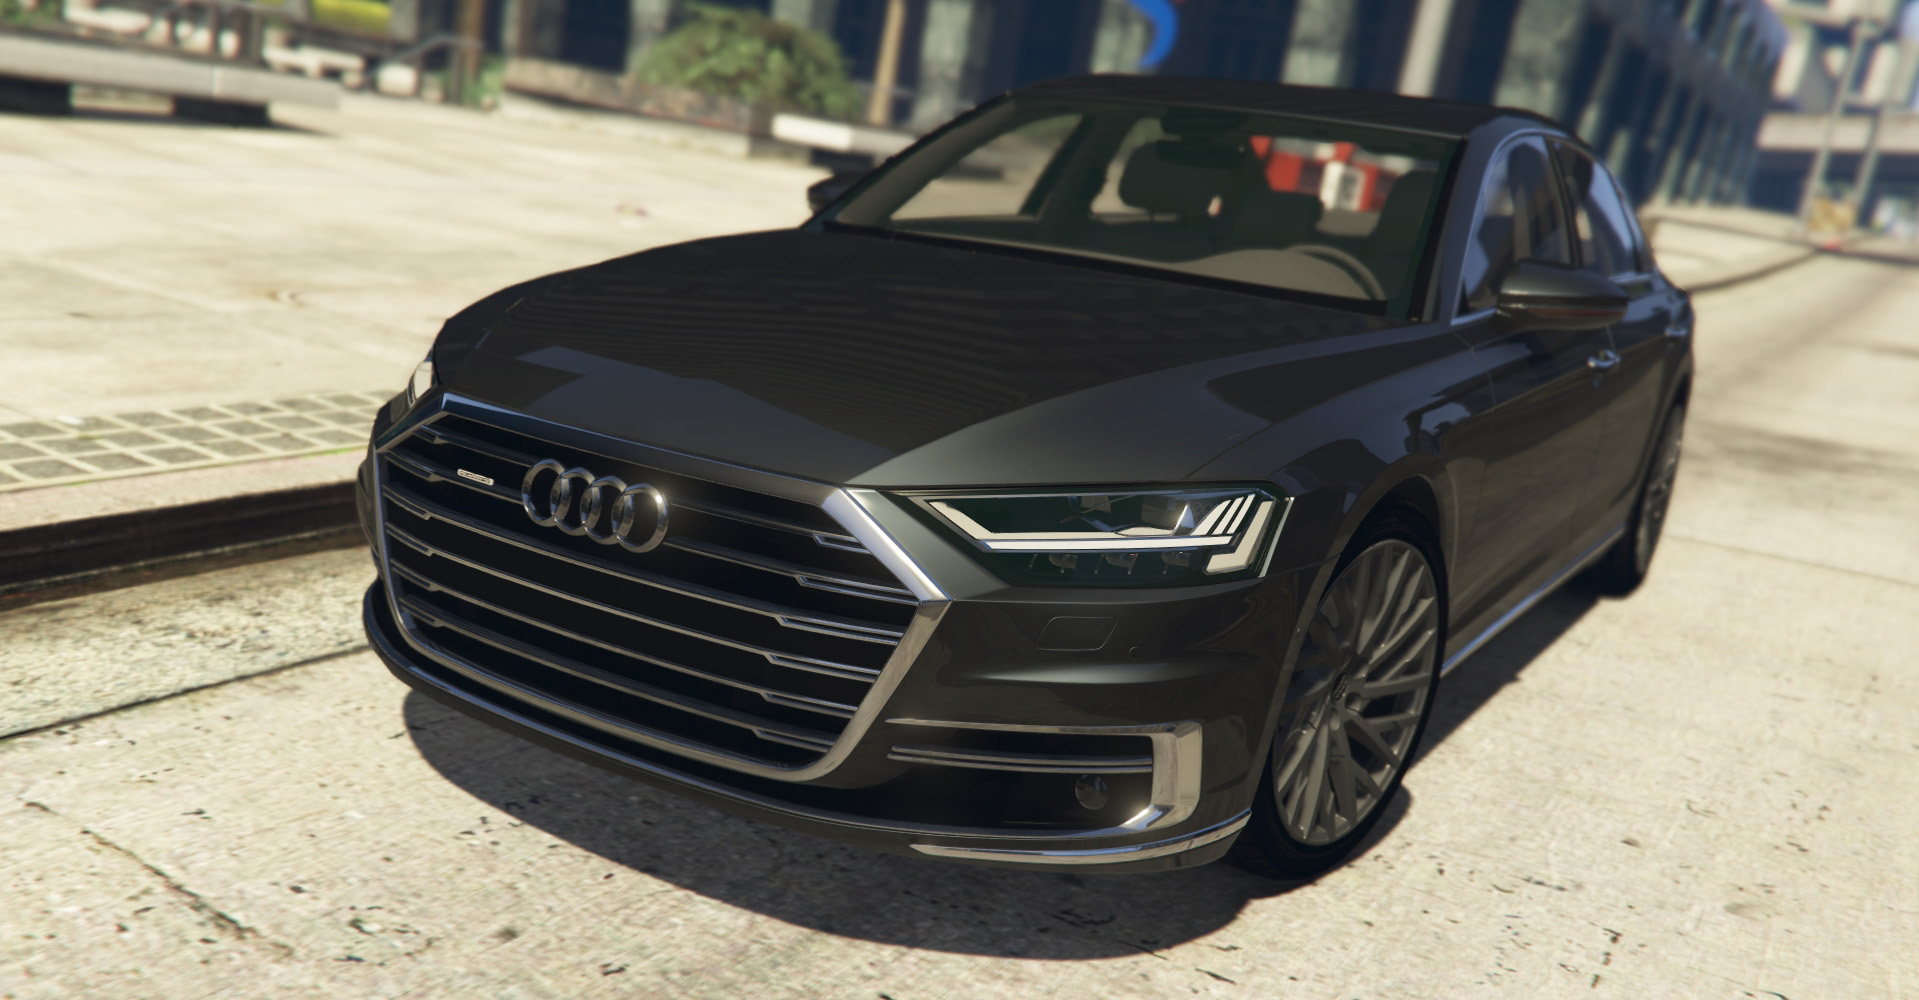 audi a8 2018 v hicules t l chargements gta 5. Black Bedroom Furniture Sets. Home Design Ideas